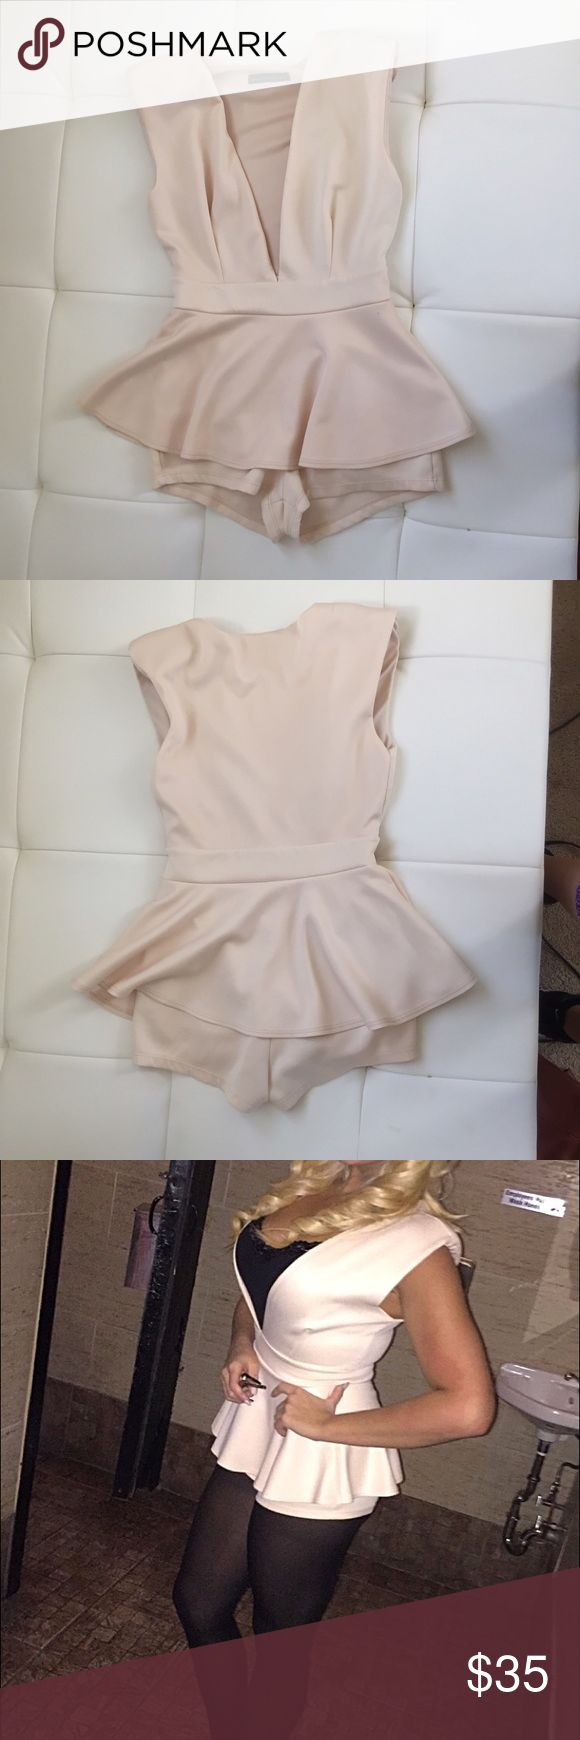 Mystique Boutique NYC light pink romper Verrrrry sexy light pink/beige romper! Worn once to a work Christmas party and never again because of my fear of outfit repeating lol. Mystique Boutique NYC Dresses